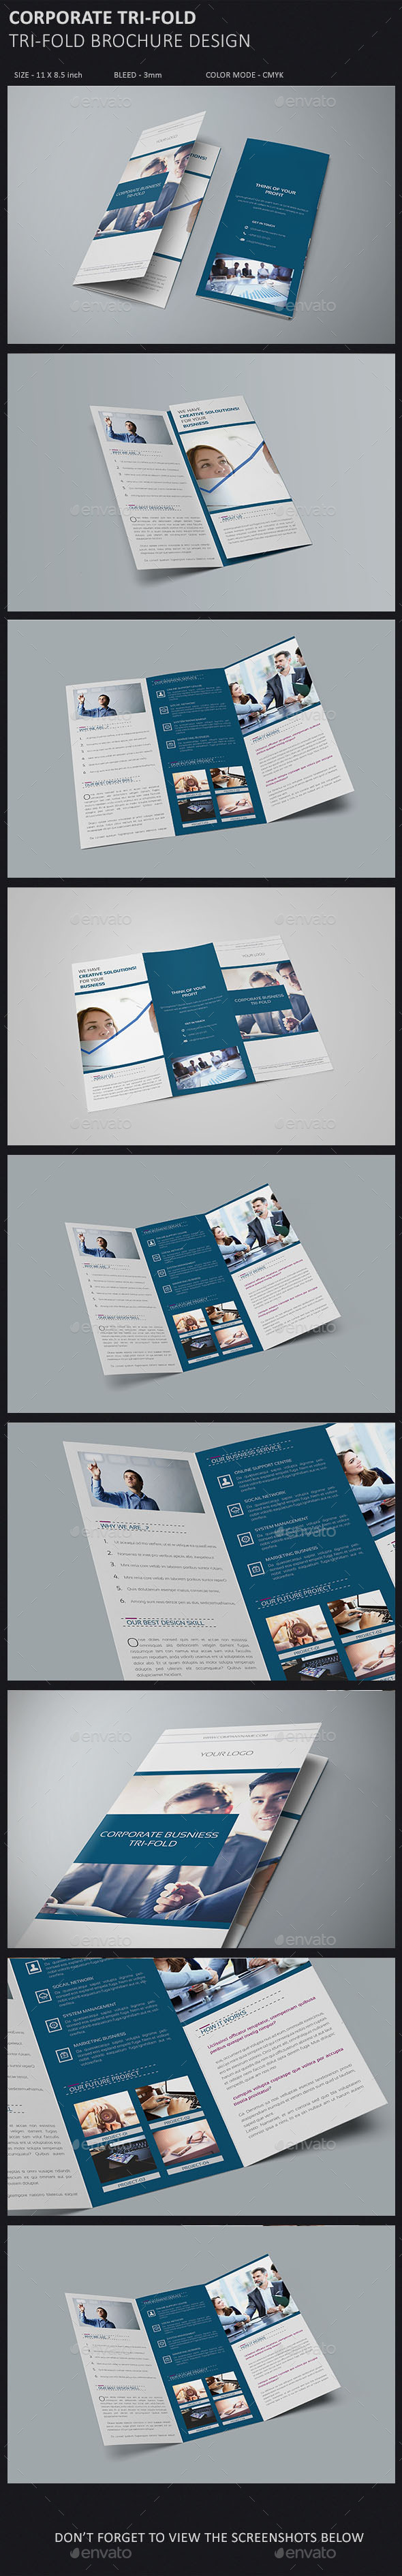 GraphicRiver Corporate Tri-fold Brochure 10255393